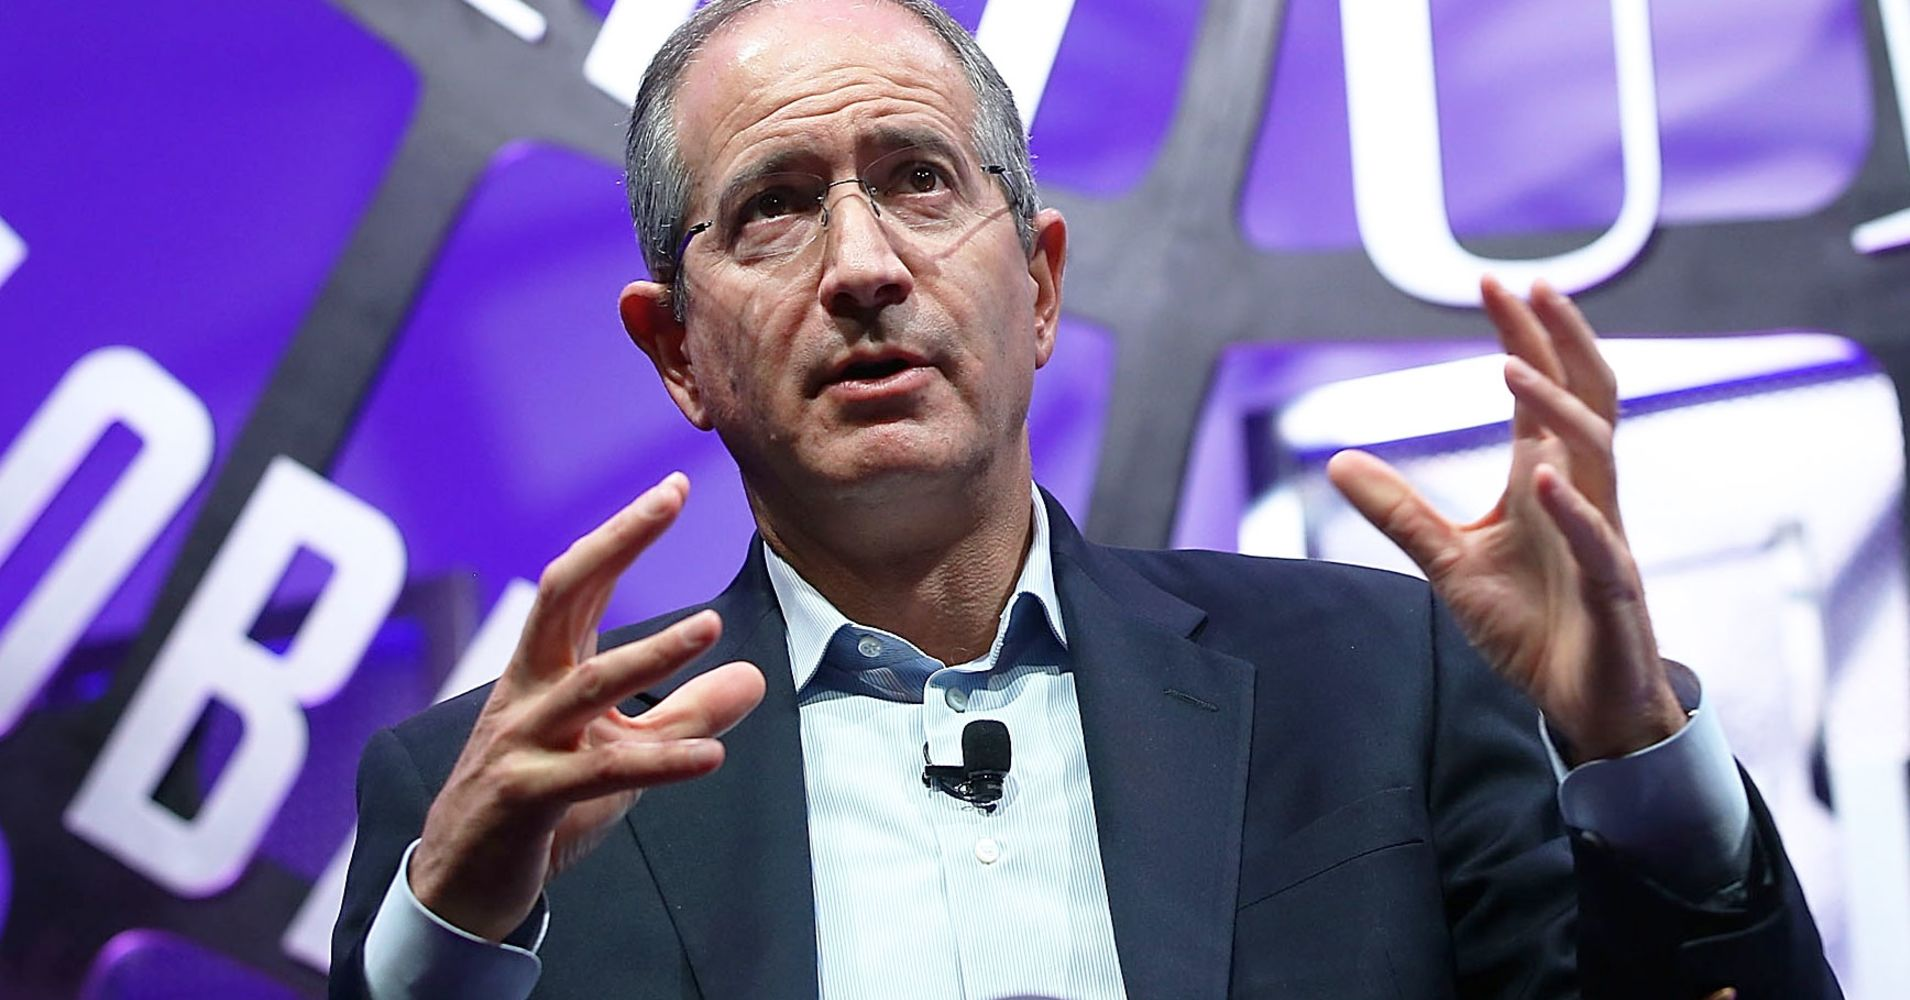 Comcast stock rises after an earnings beat